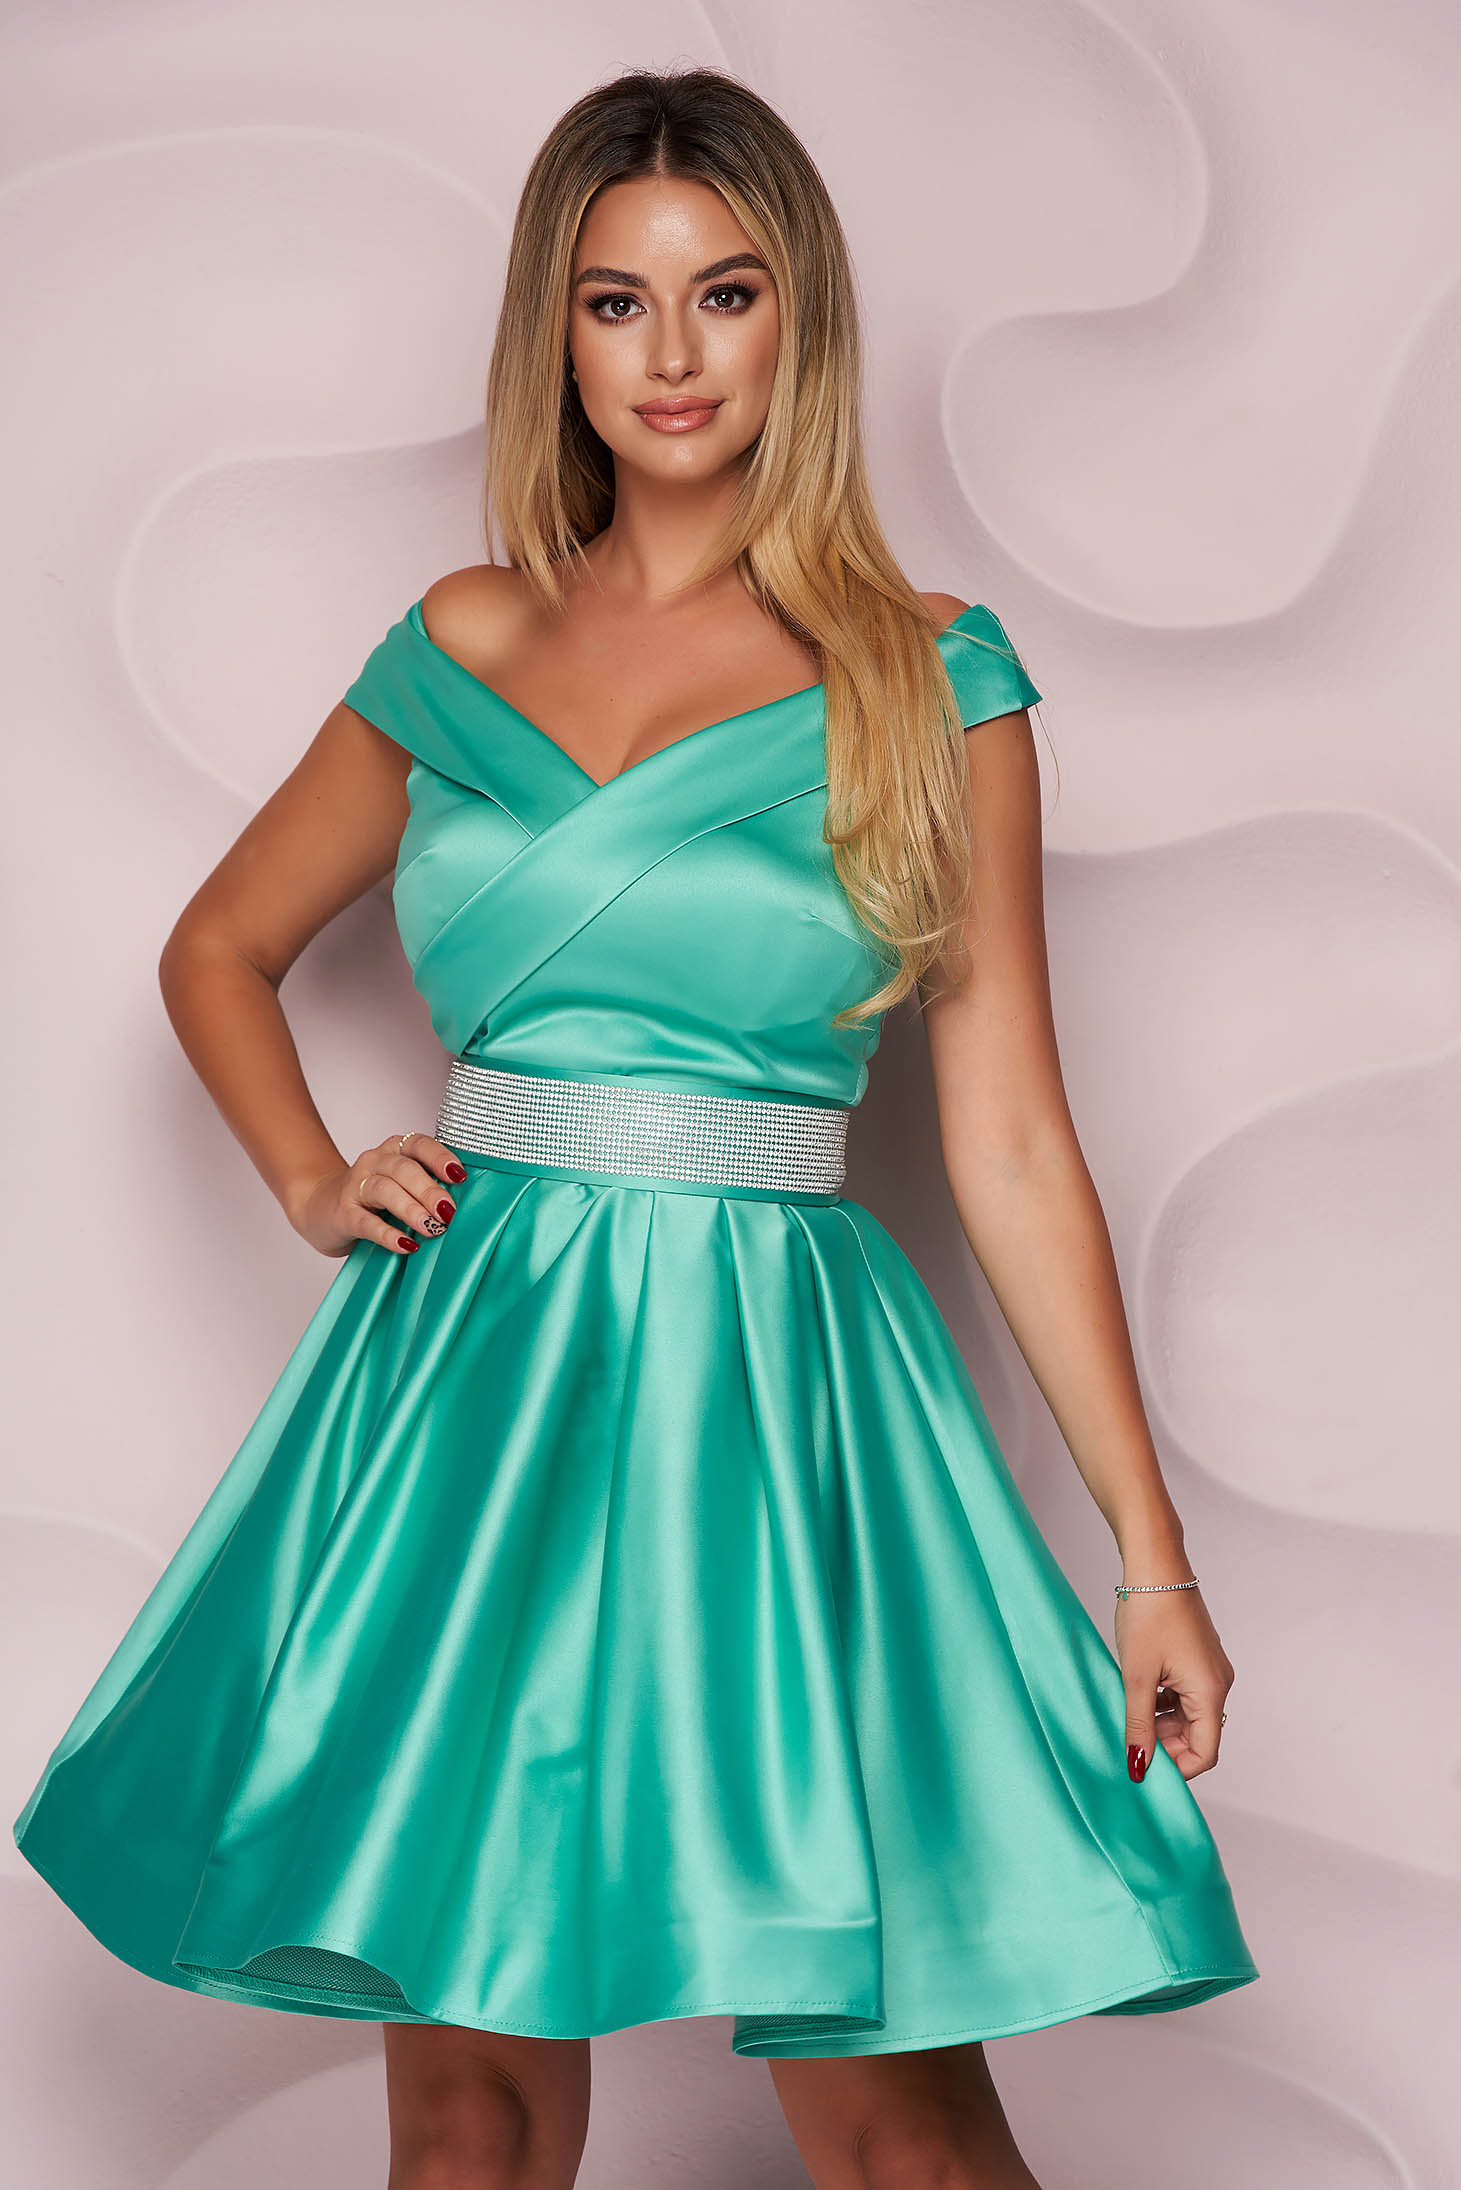 Turquoise dress from satin cloche occasional on the shoulders short cut